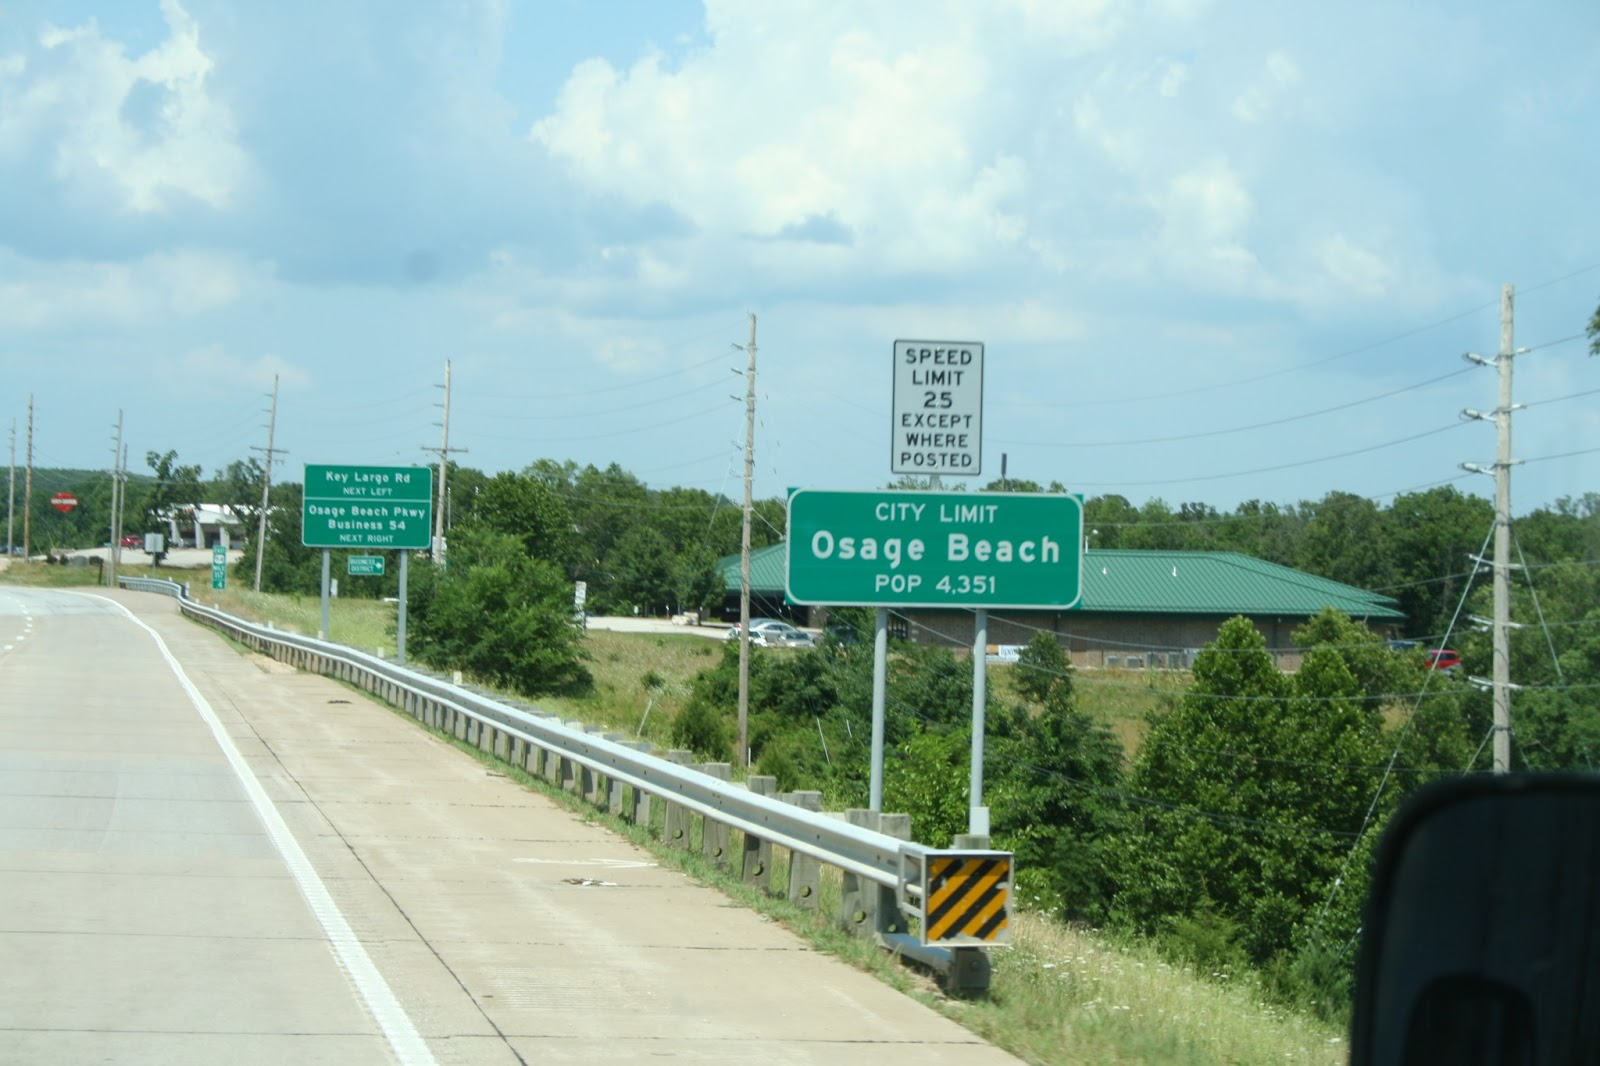 Barber Shop Columbia Mo : After about 40 miles on I-44, we turned onto a Hwy. 5 toward Osage ...